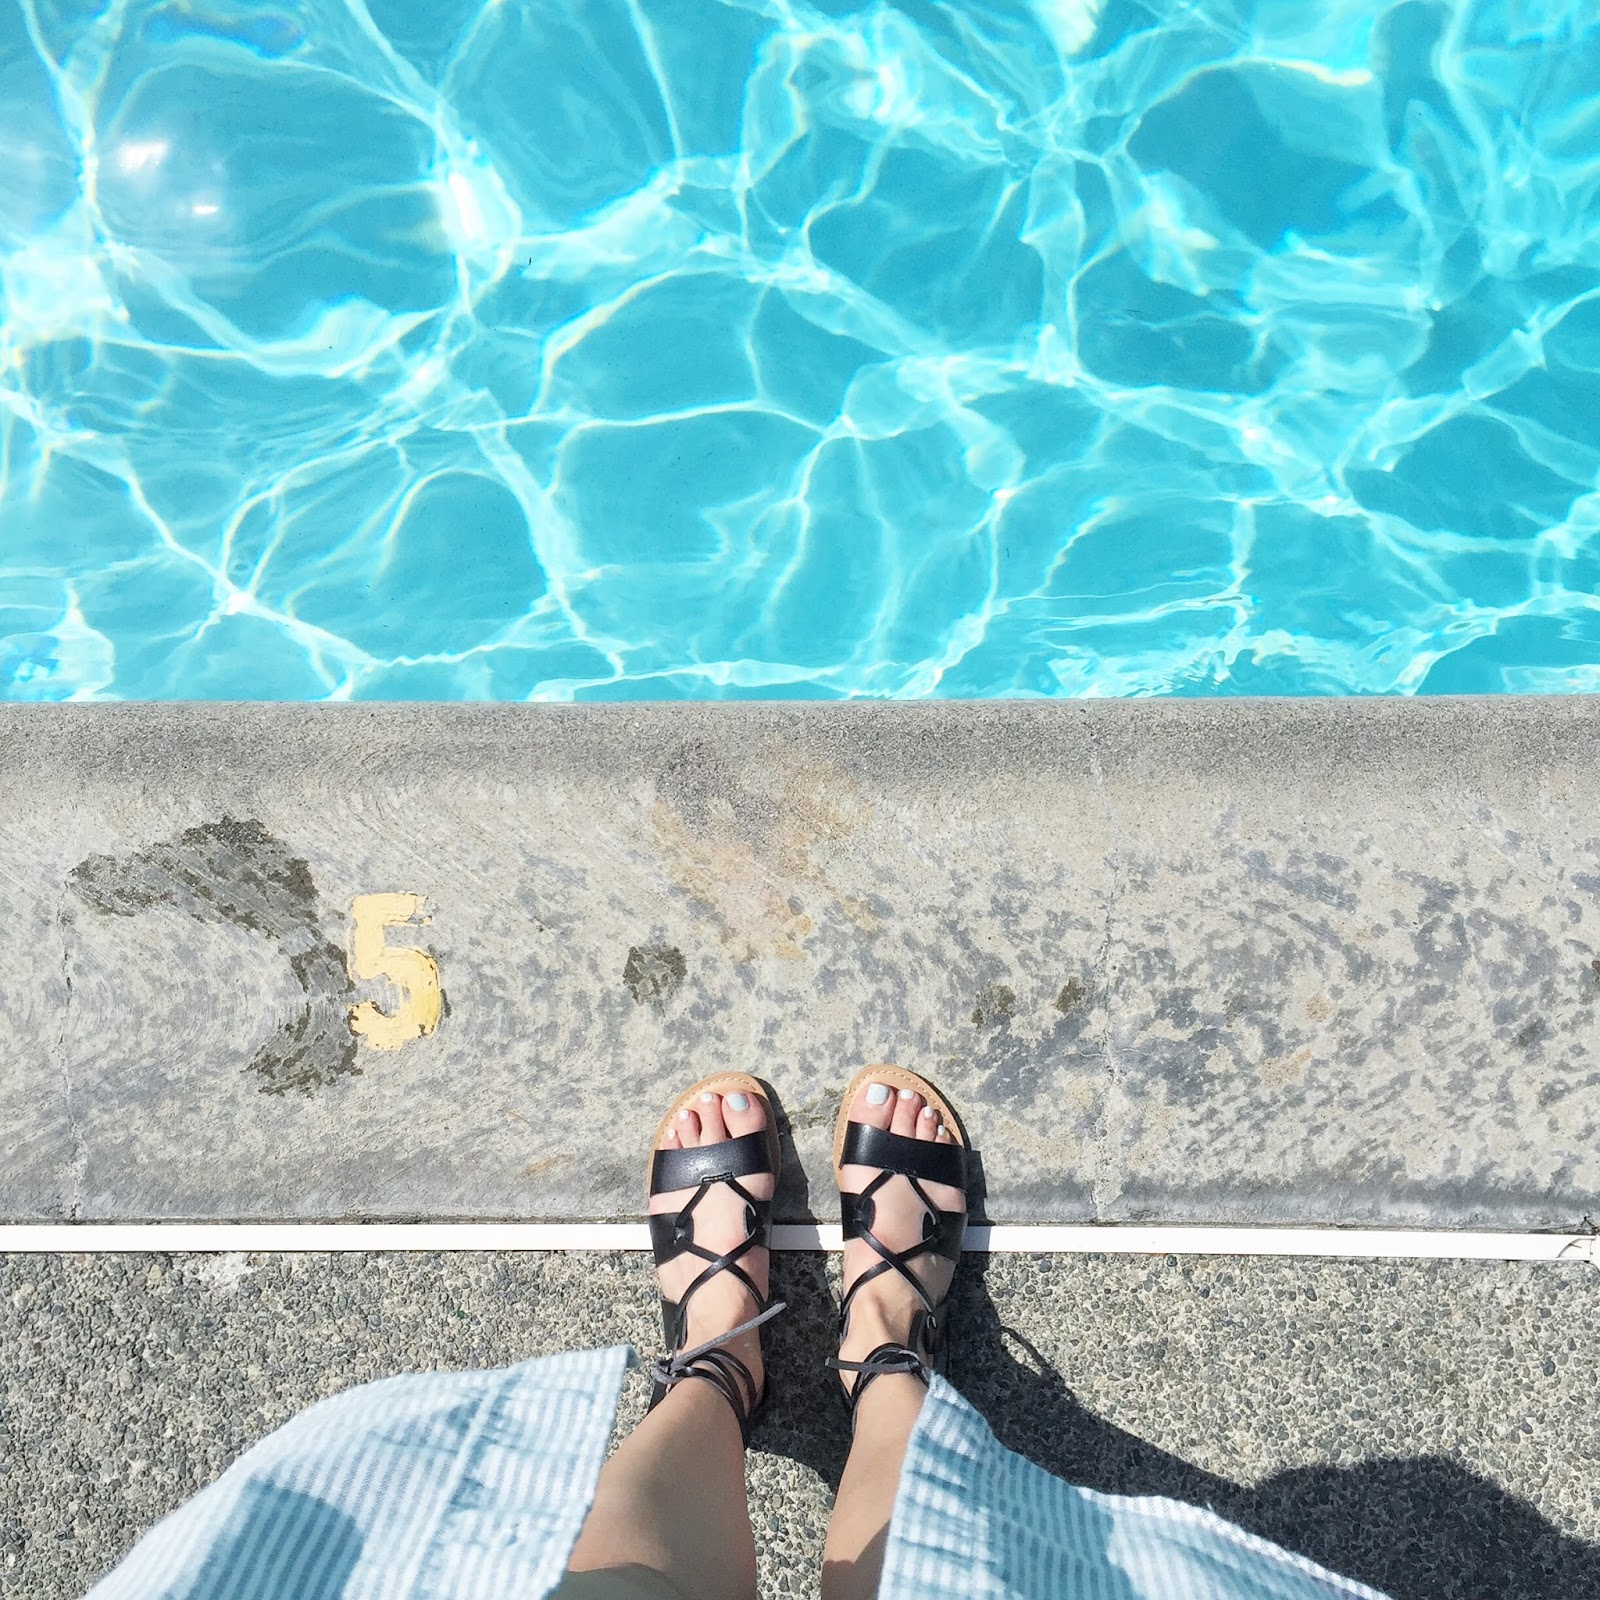 view from the top of gladiator sandals pool side during a hot summer day